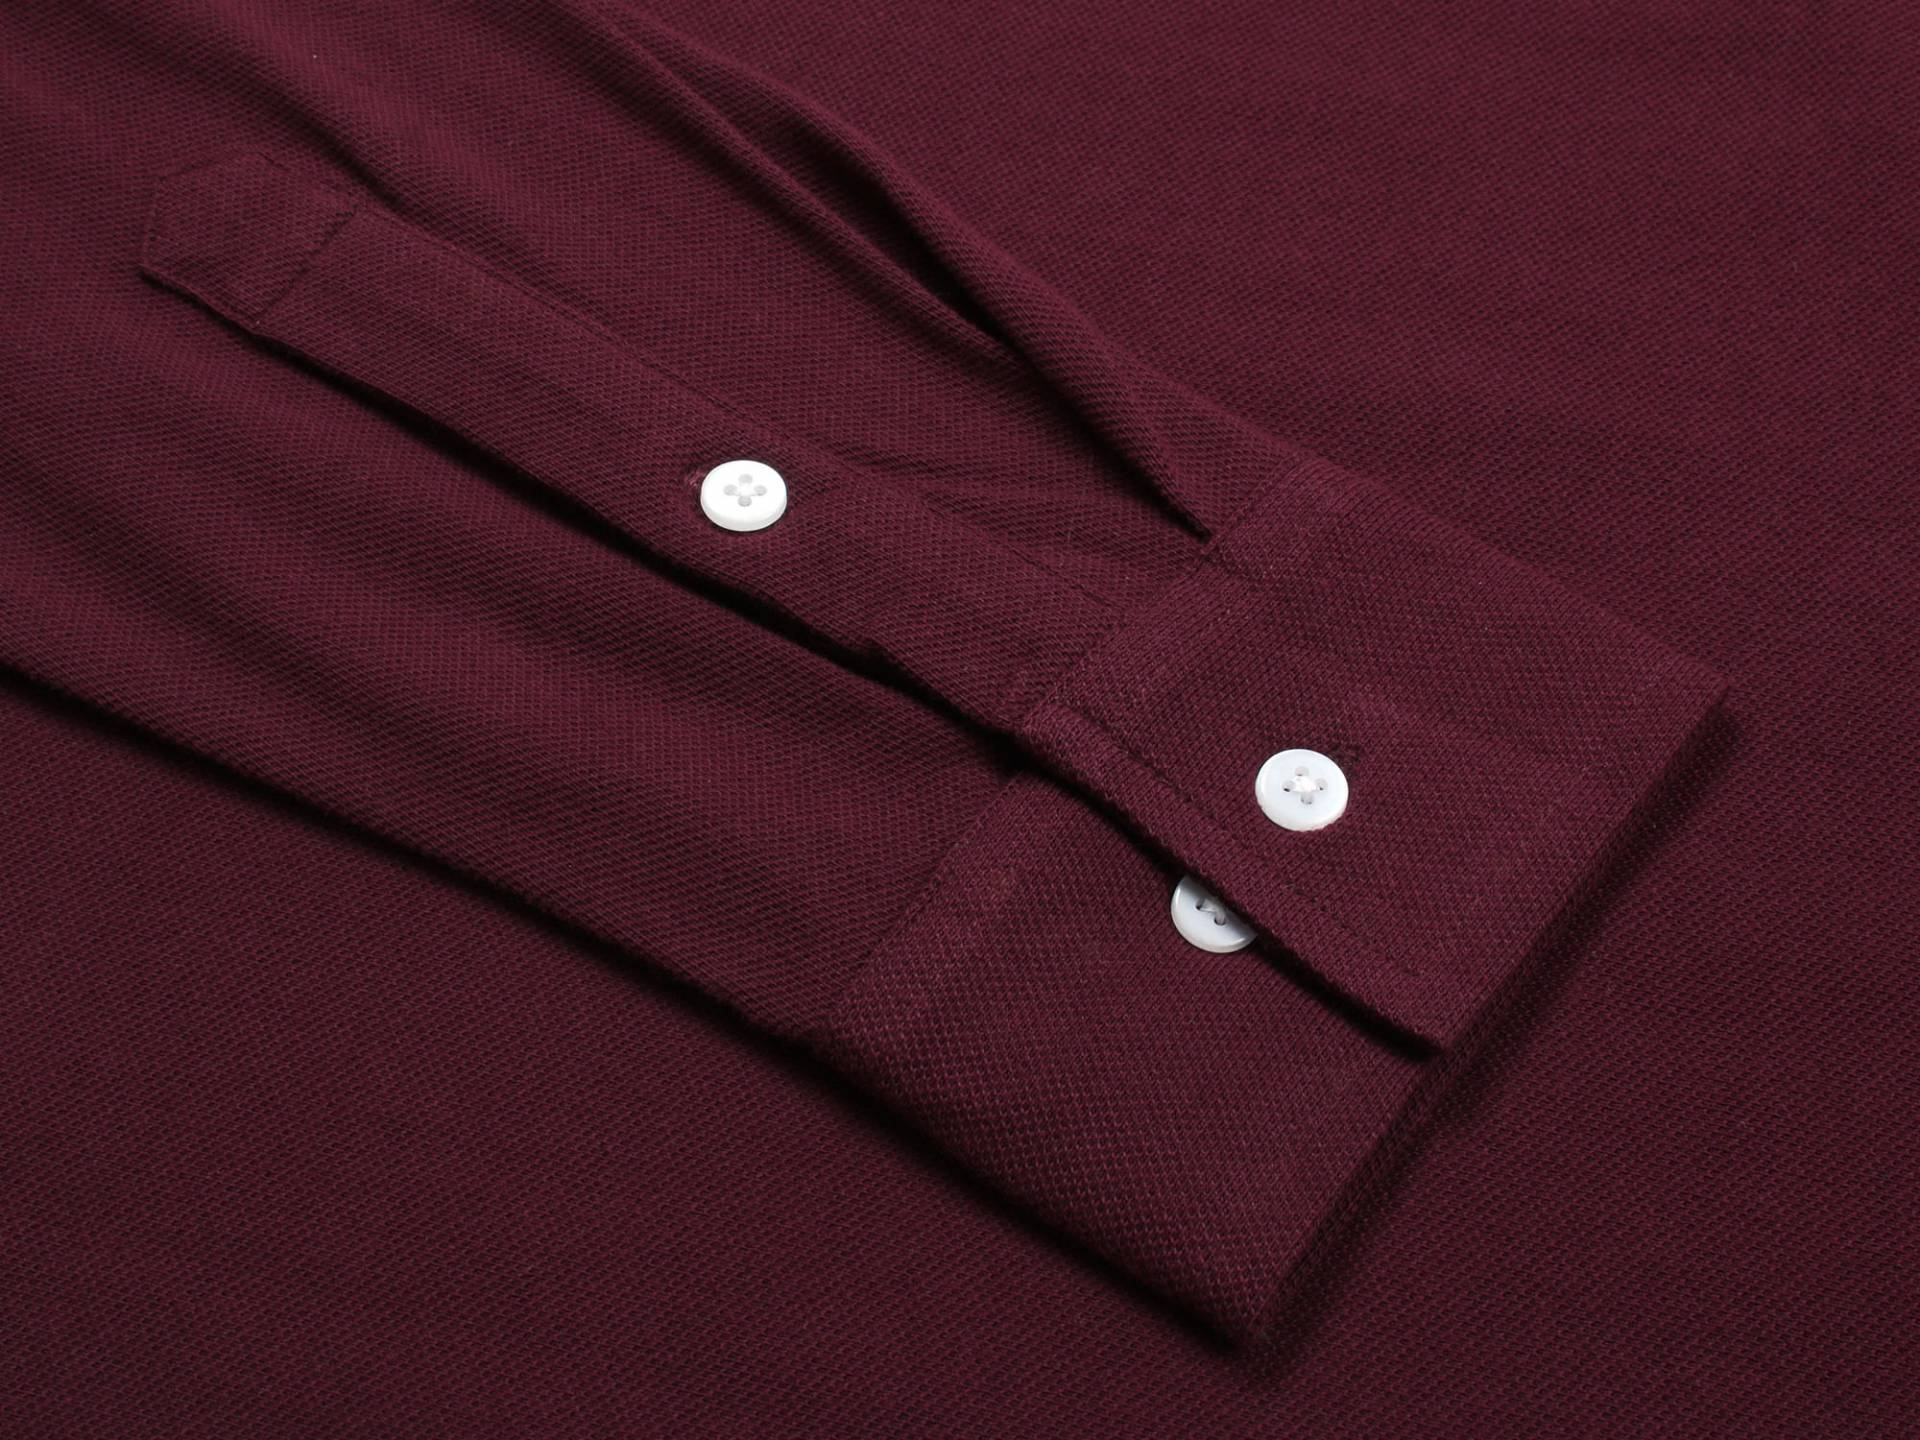 Detail of white buttons on wrist sleeve of burgundy shirt. Adjustable sleeve length to roll up